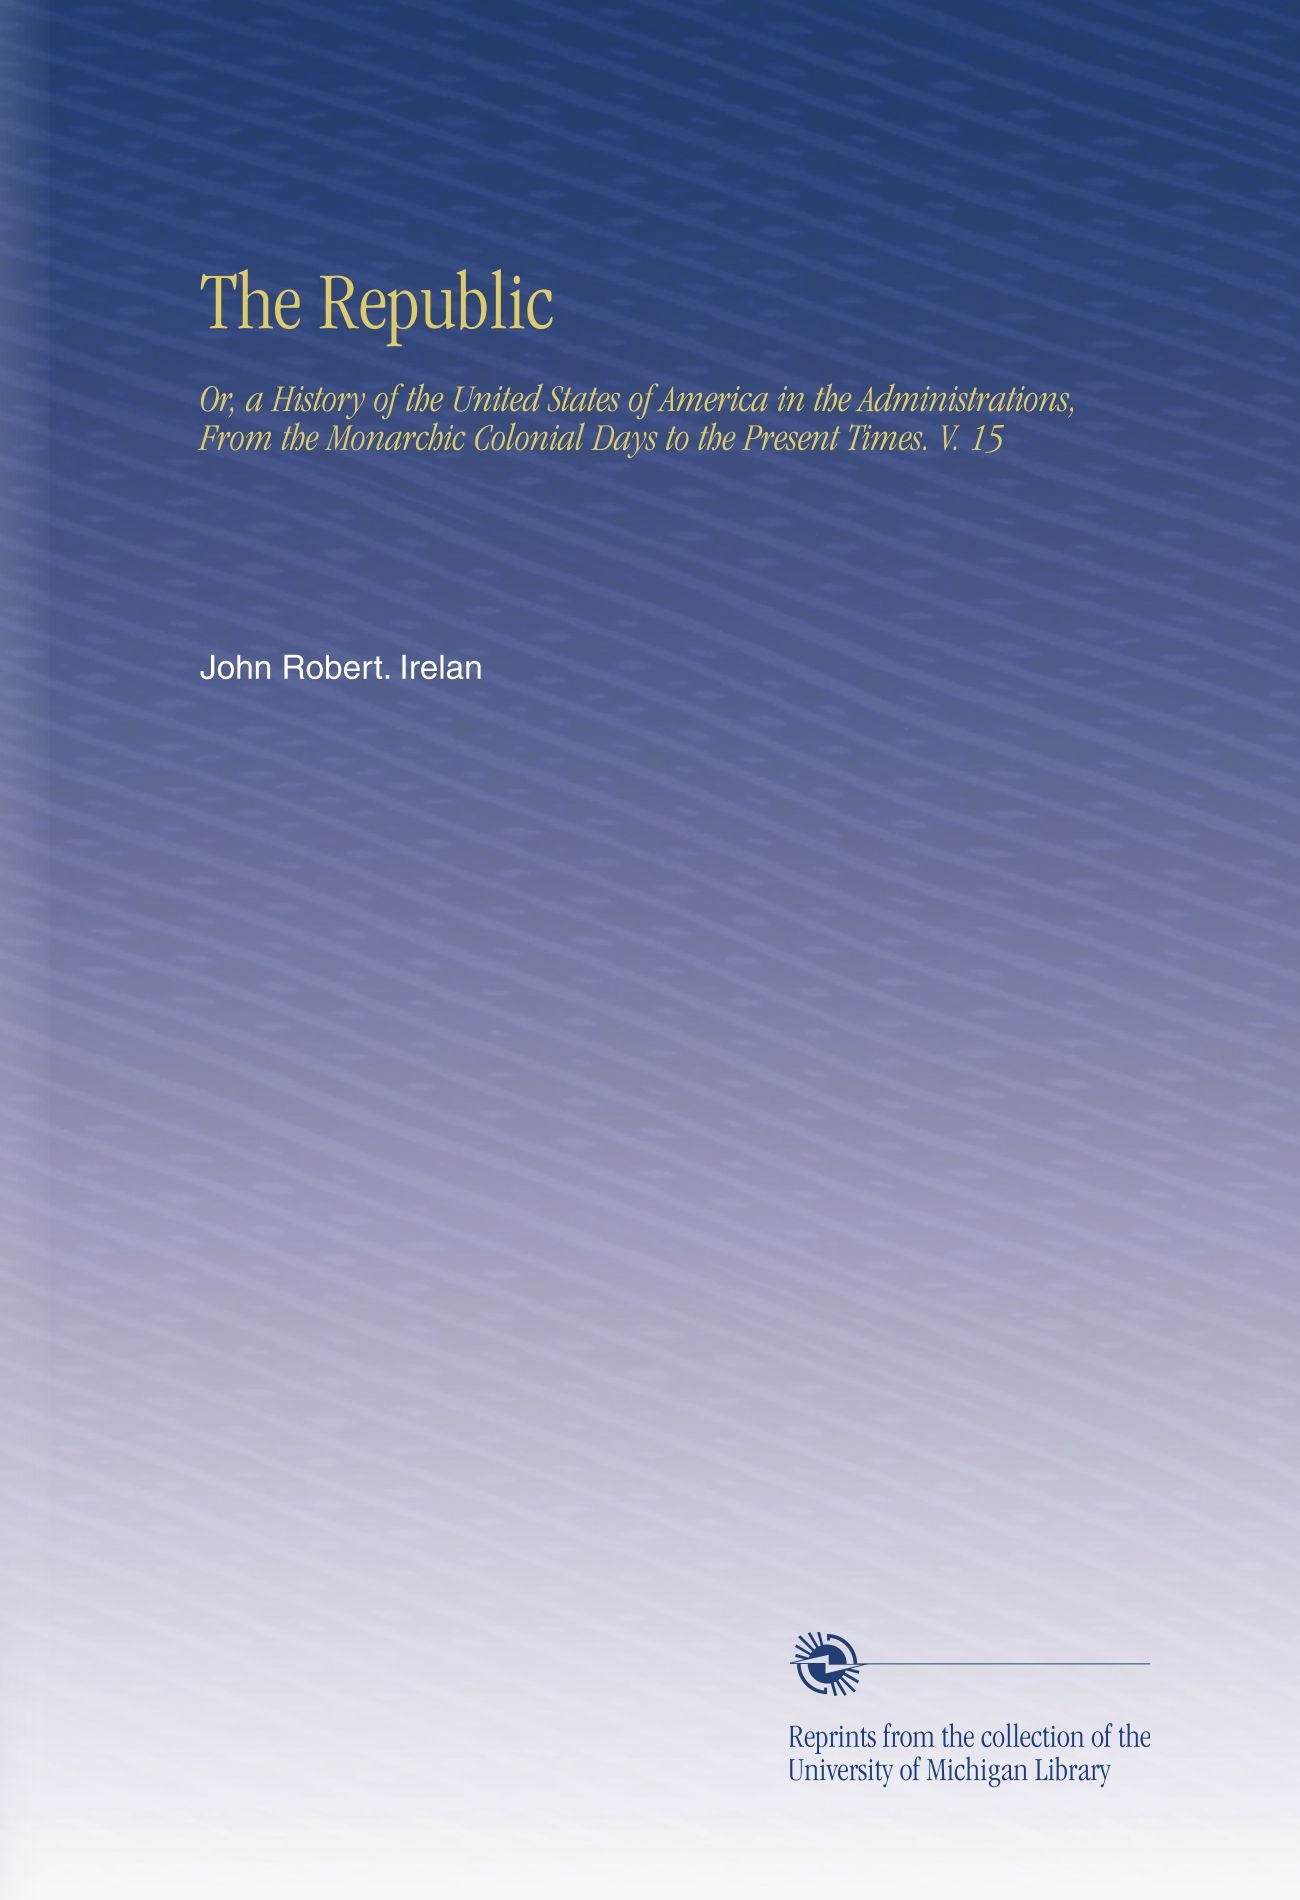 Read Online The Republic: Or, a History of the United States of America in the Administrations, From the Monarchic Colonial Days to the Present Times. V. 15 ebook